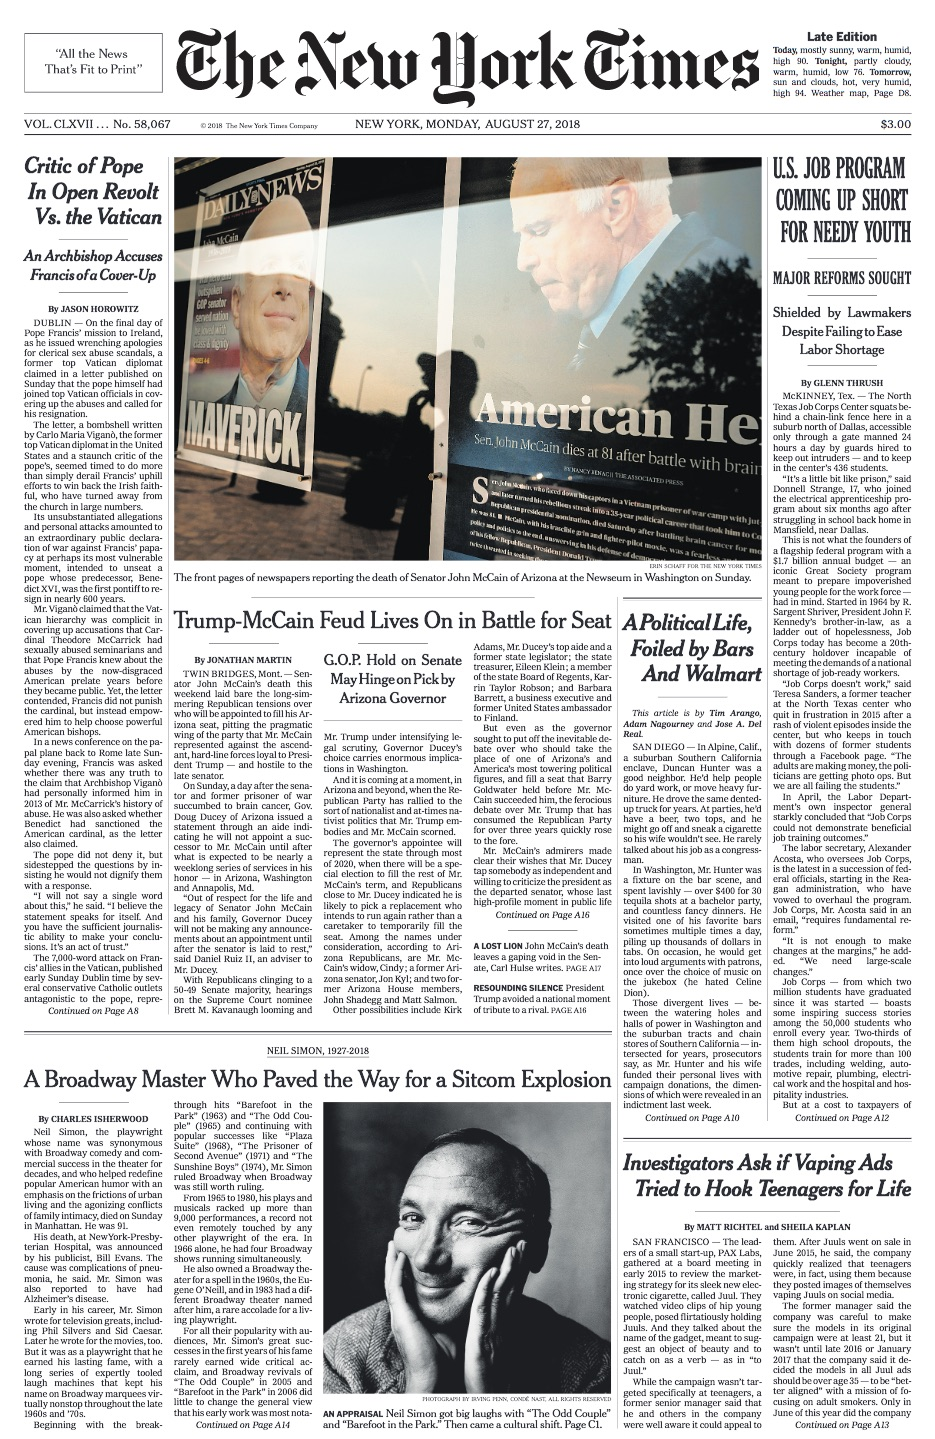 NYT_FrontPage_082718.jpg